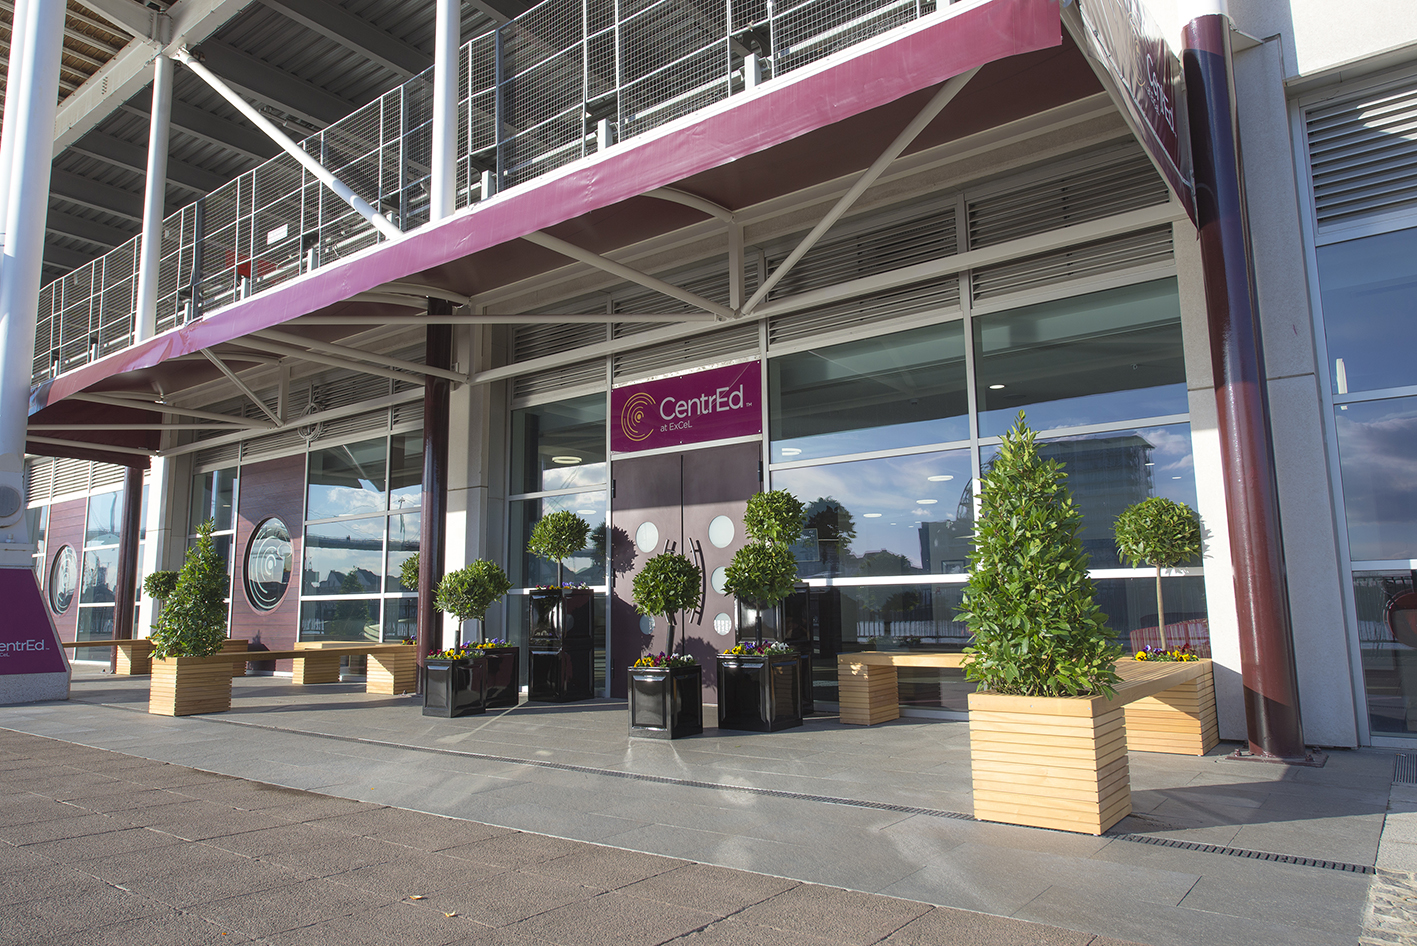 credit-excel-london-goodlight-led-lights-in-excel-outside-building-sml